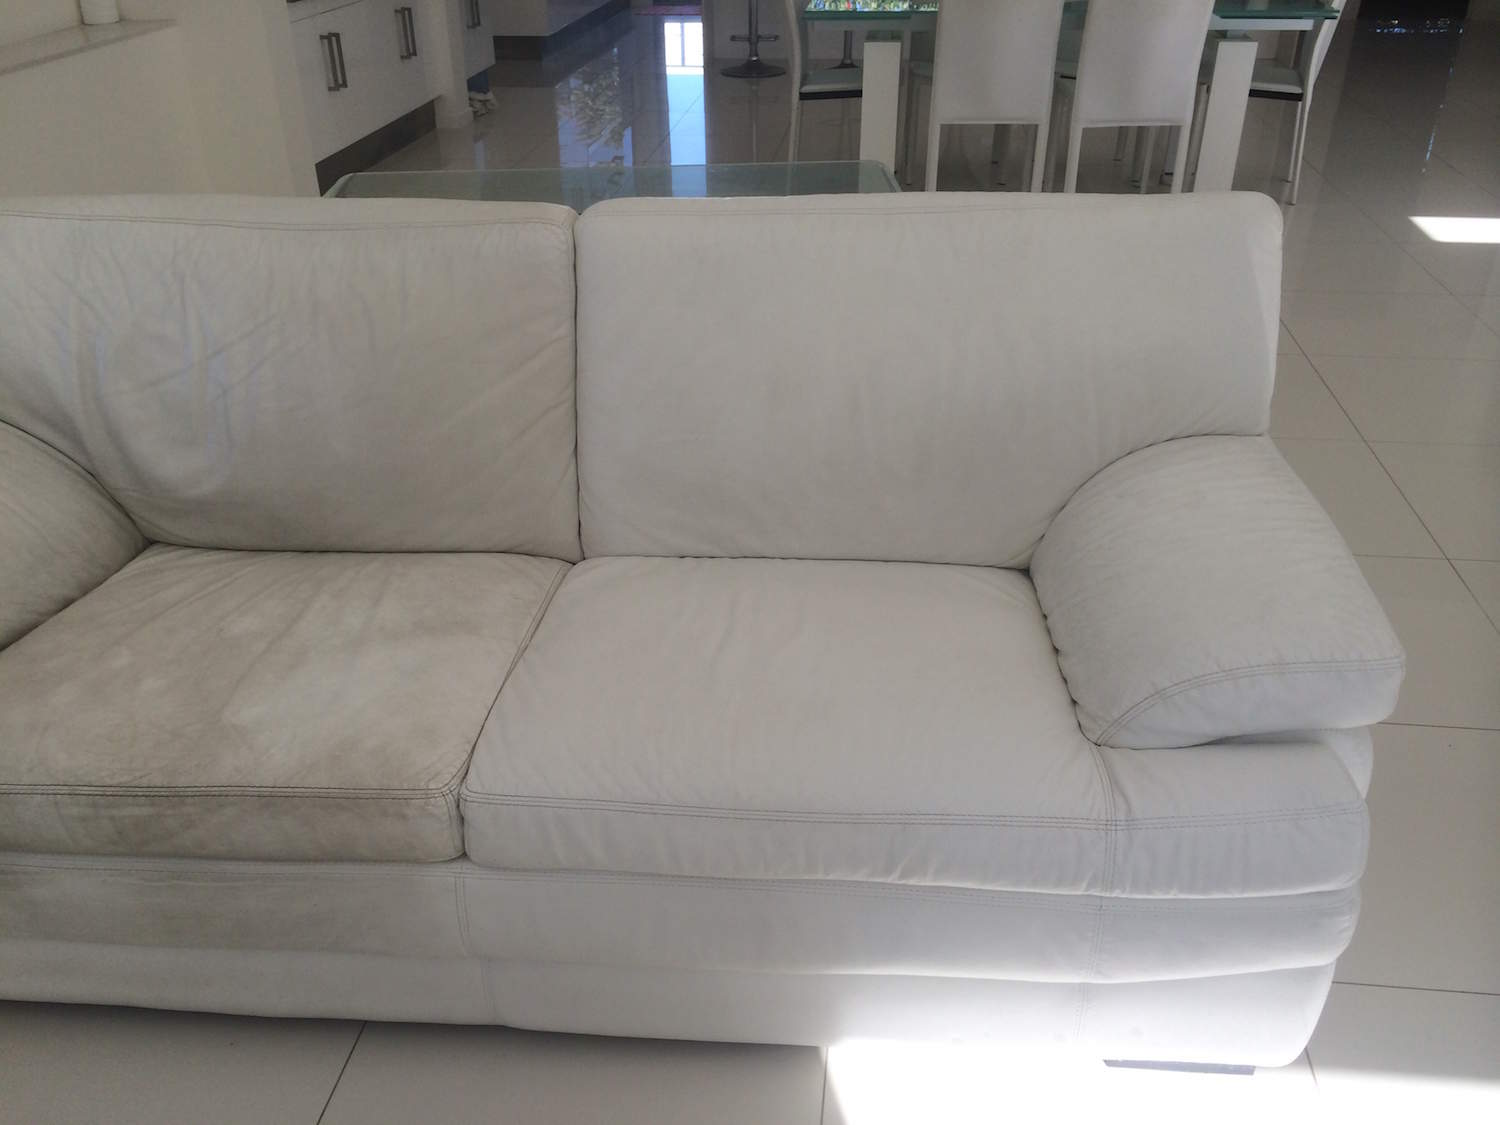 Couch Cleaning NYC  Upholstery Cleaning NYC